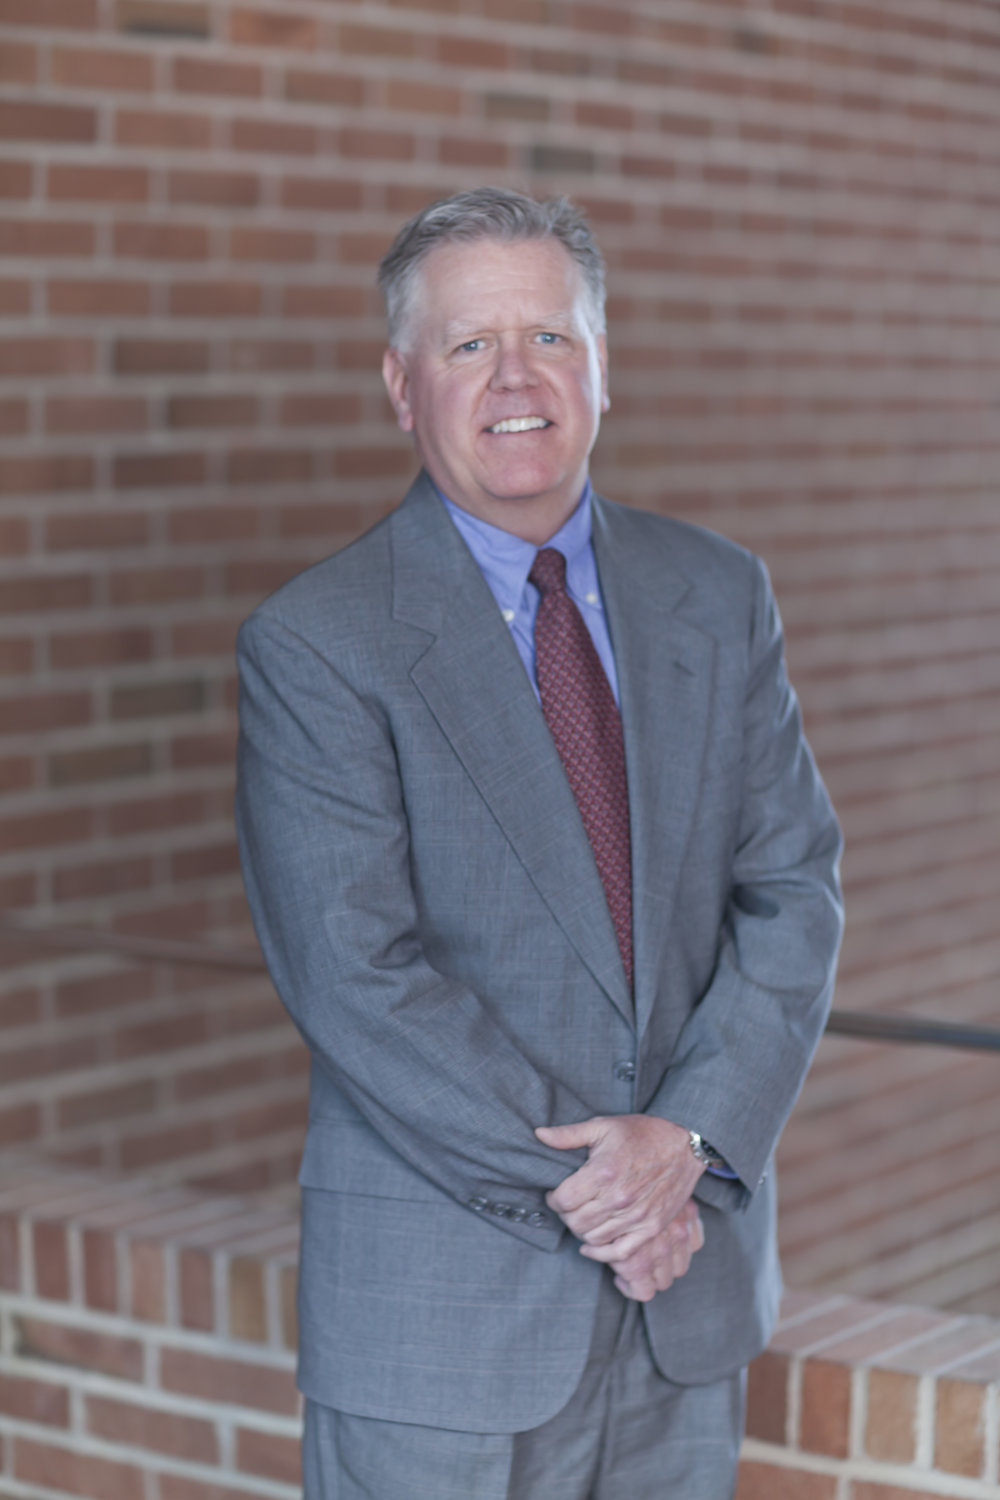 William Chapin, M.B.A. Chief Administrative Officer & Controller wchapin@trudeauinstitute.org